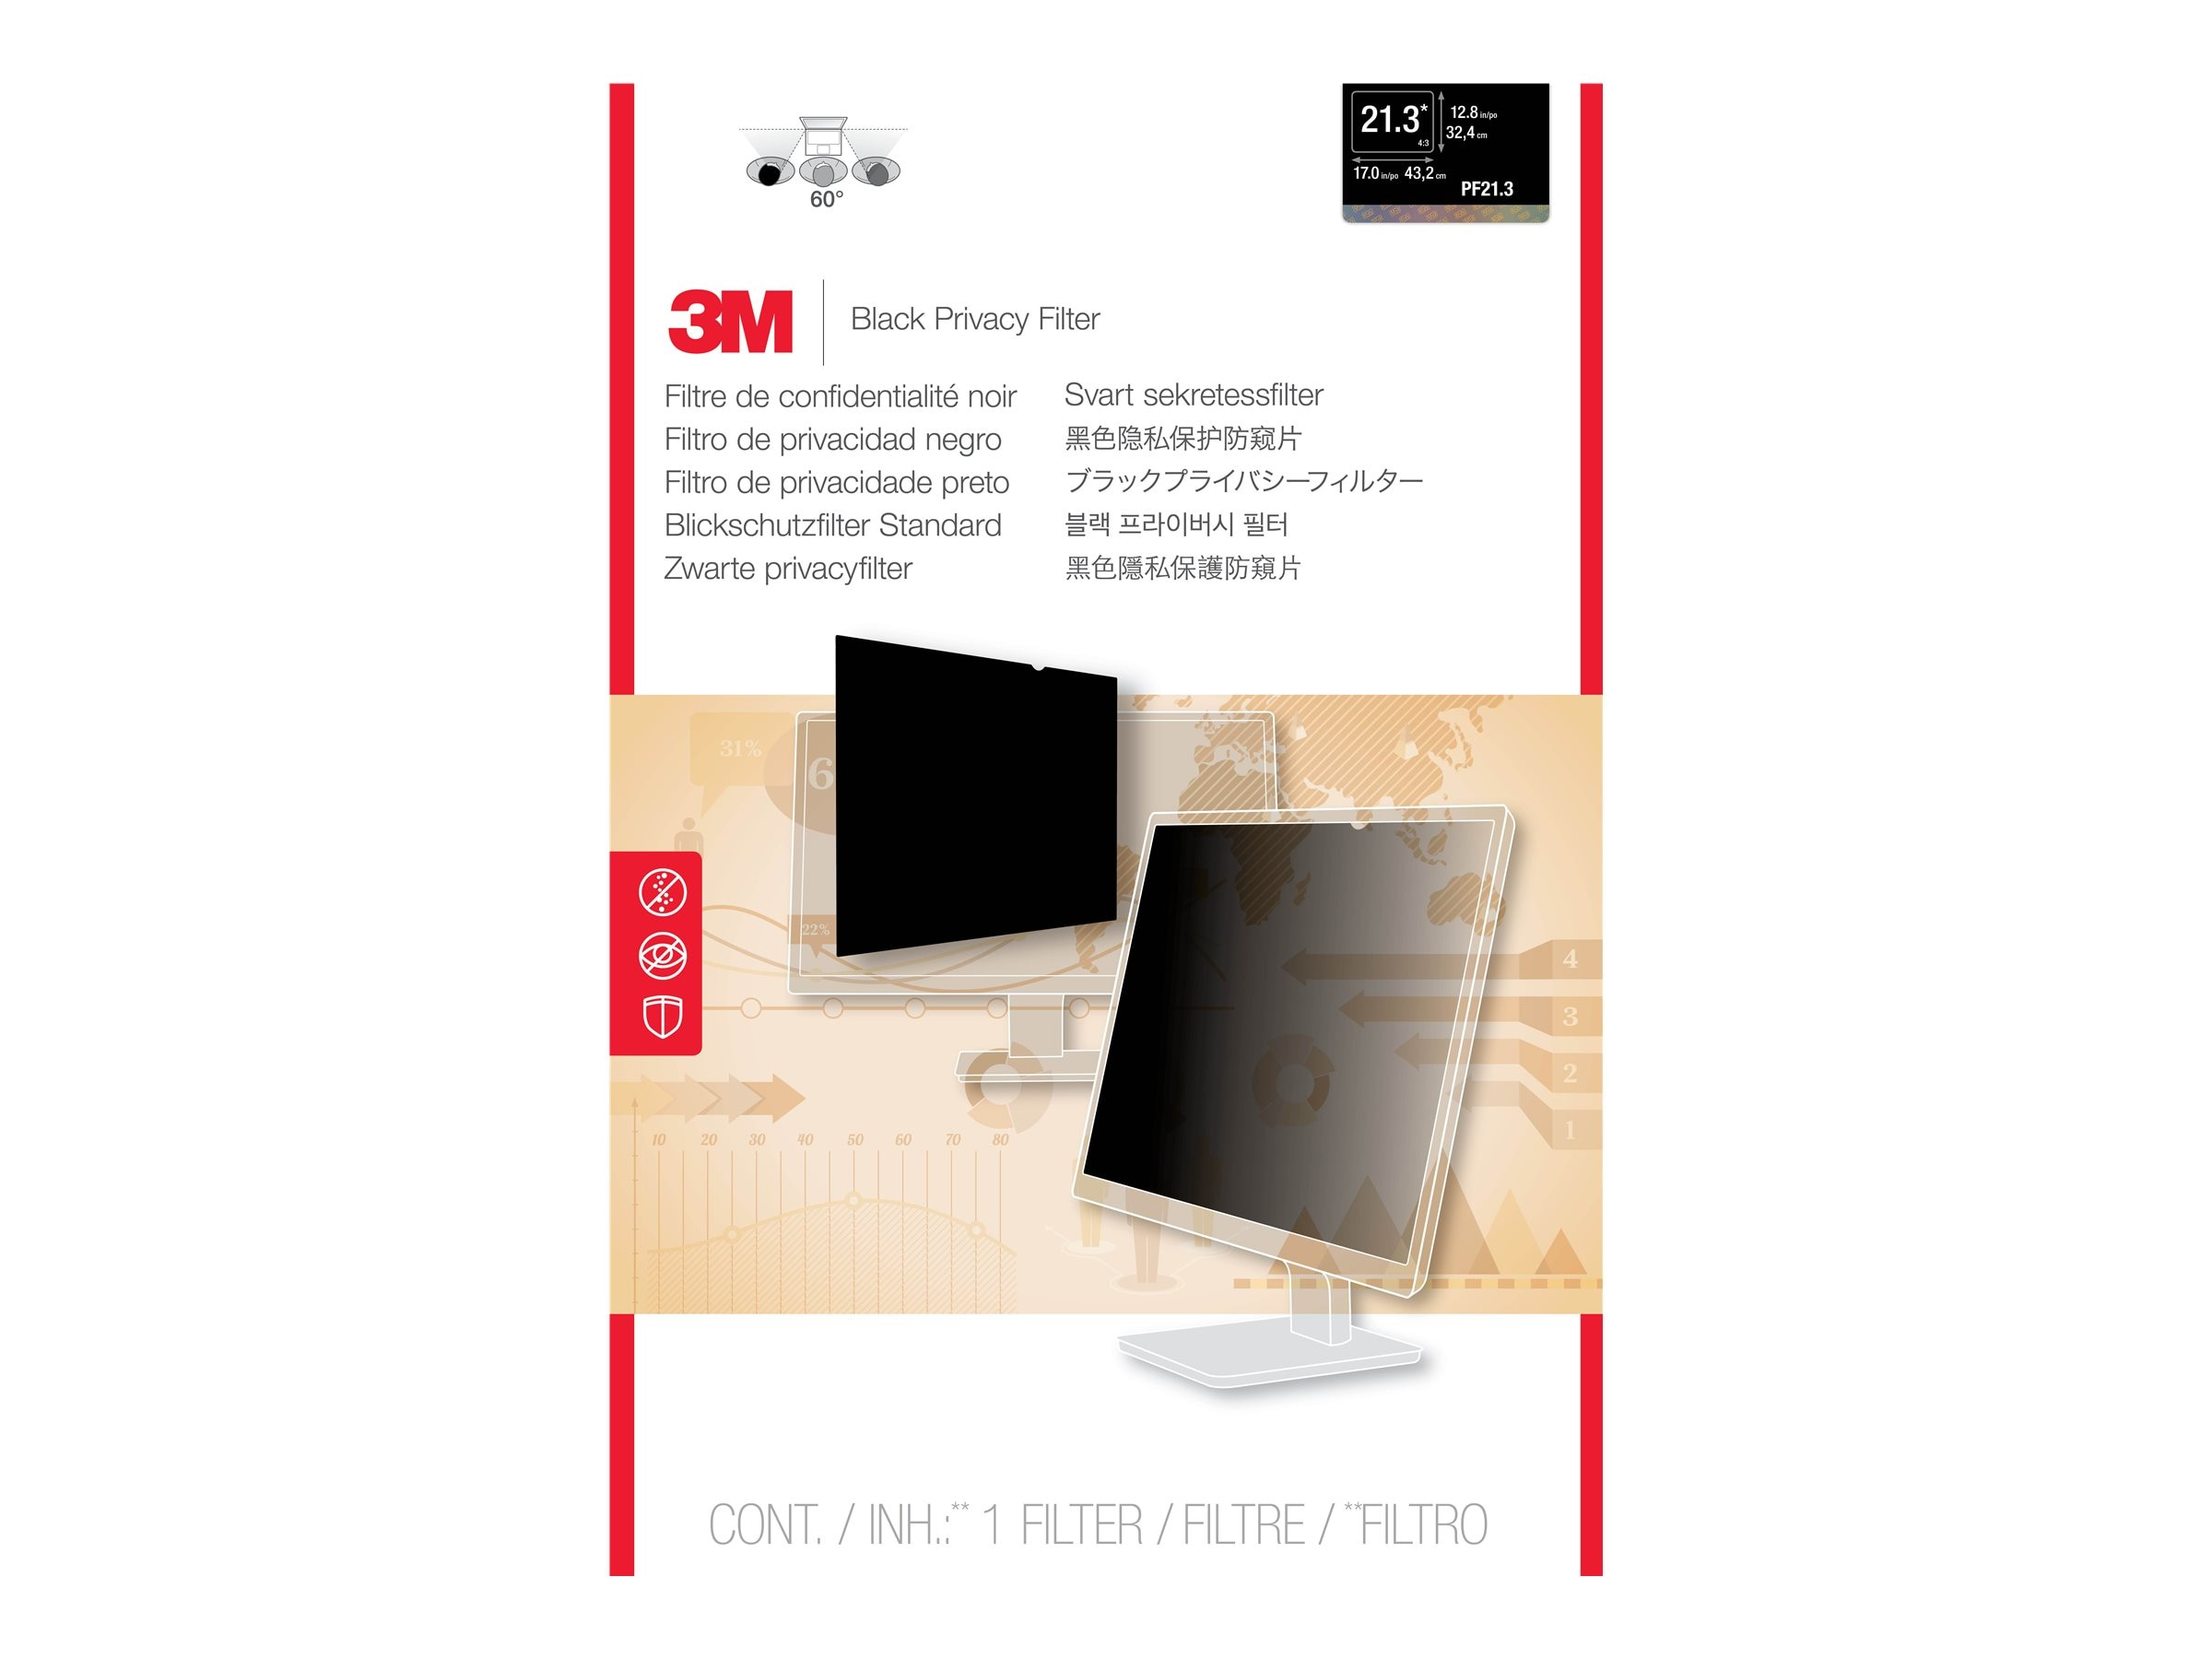 3M Privacy Filter for 21.3-inch LCD, PF21.3